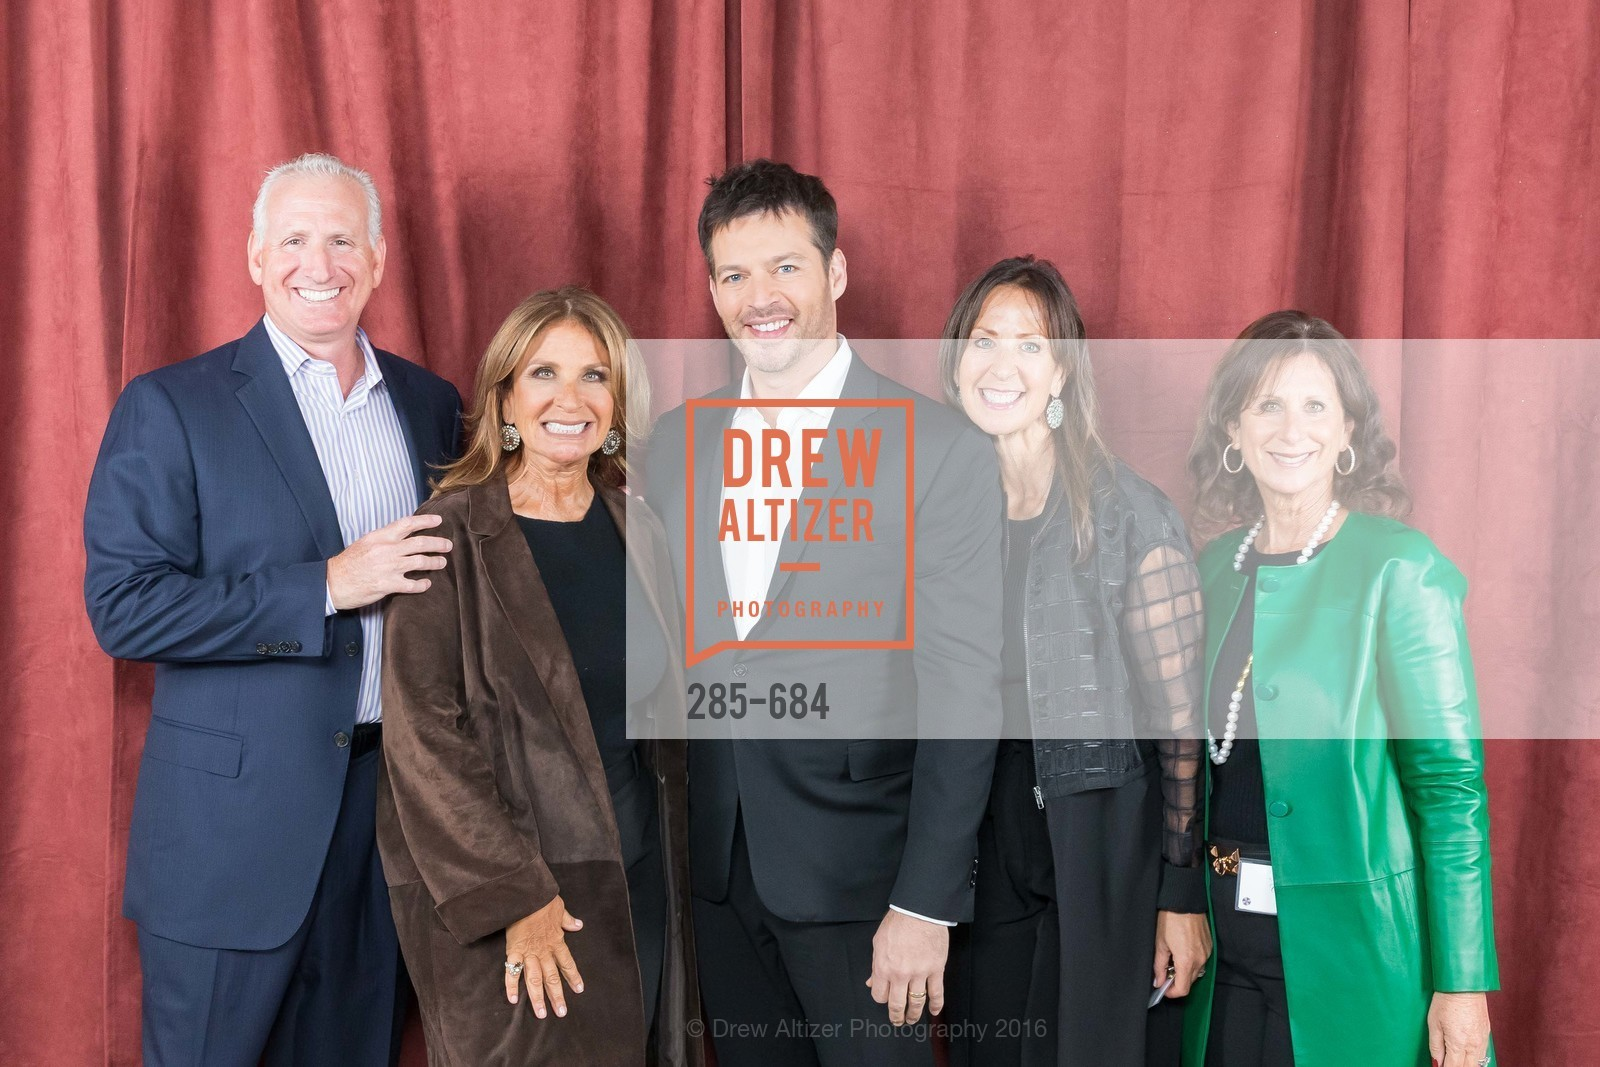 David Weil, Susie Fox, Harry Connick Jr., Jessica Weil, Jean Colen, Under One Umbrella, Sharon Heights Golf and Country Club, January 13th, 2016,Drew Altizer, Drew Altizer Photography, full-service agency, private events, San Francisco photographer, photographer california